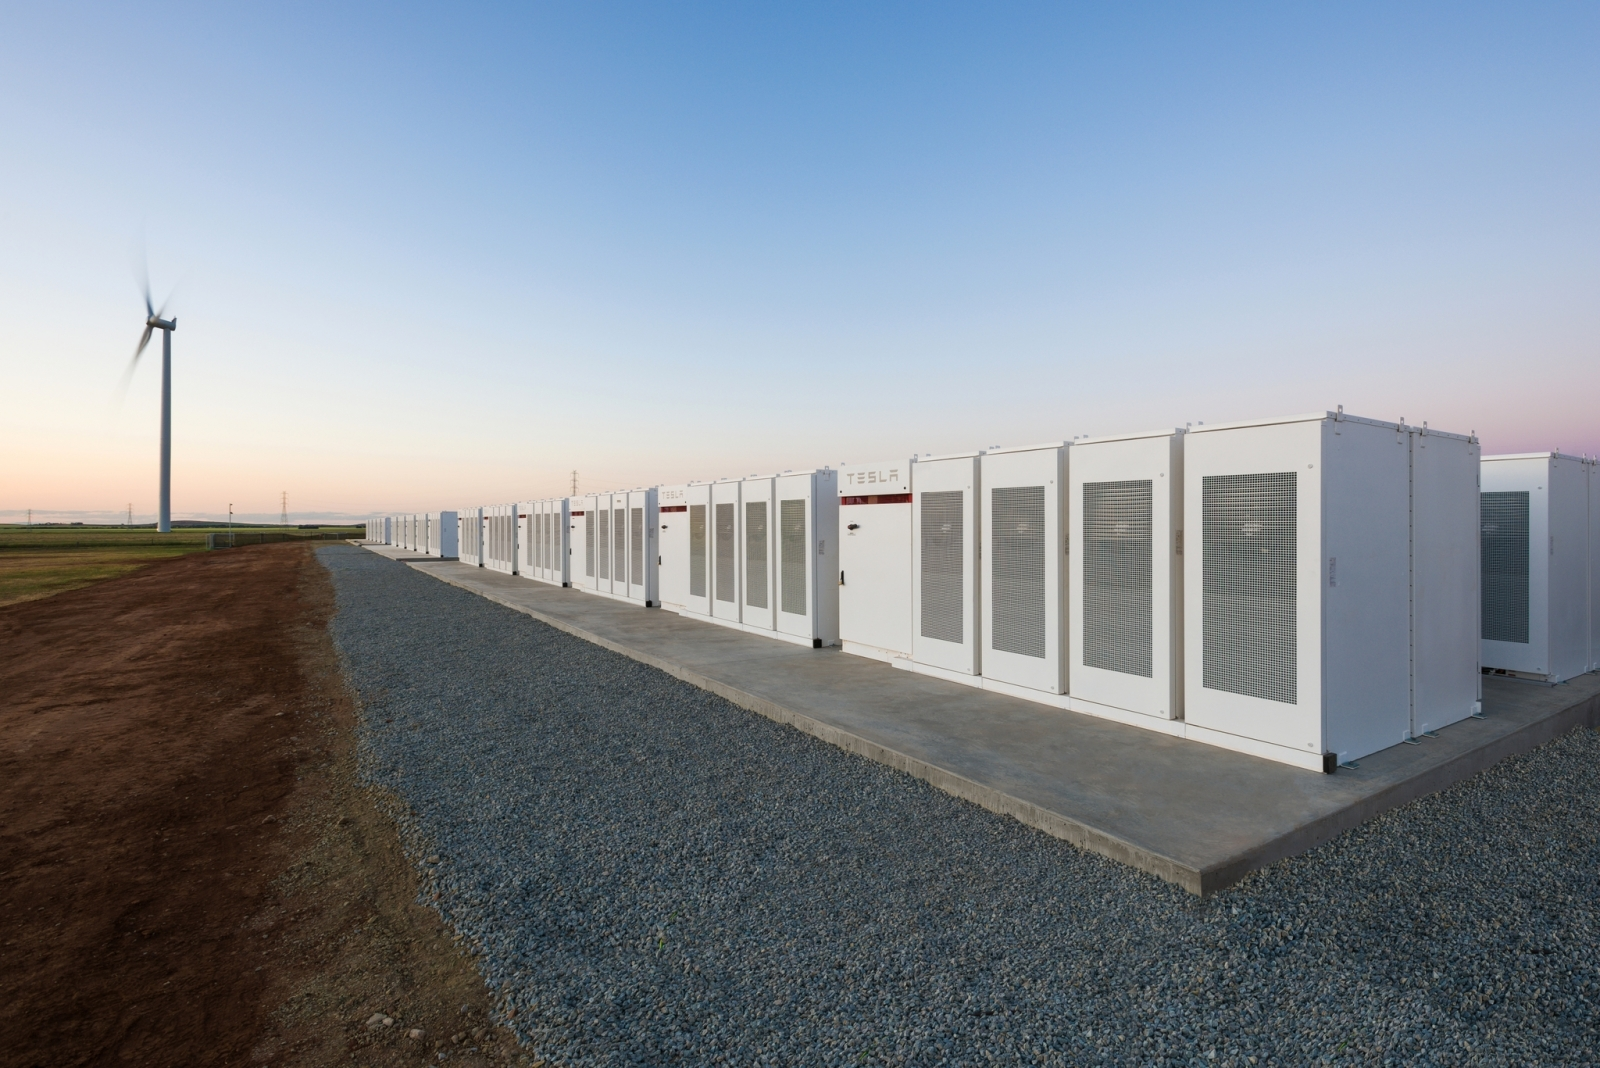 Elon Musk's Tesla battery in South Australia poised for final testing